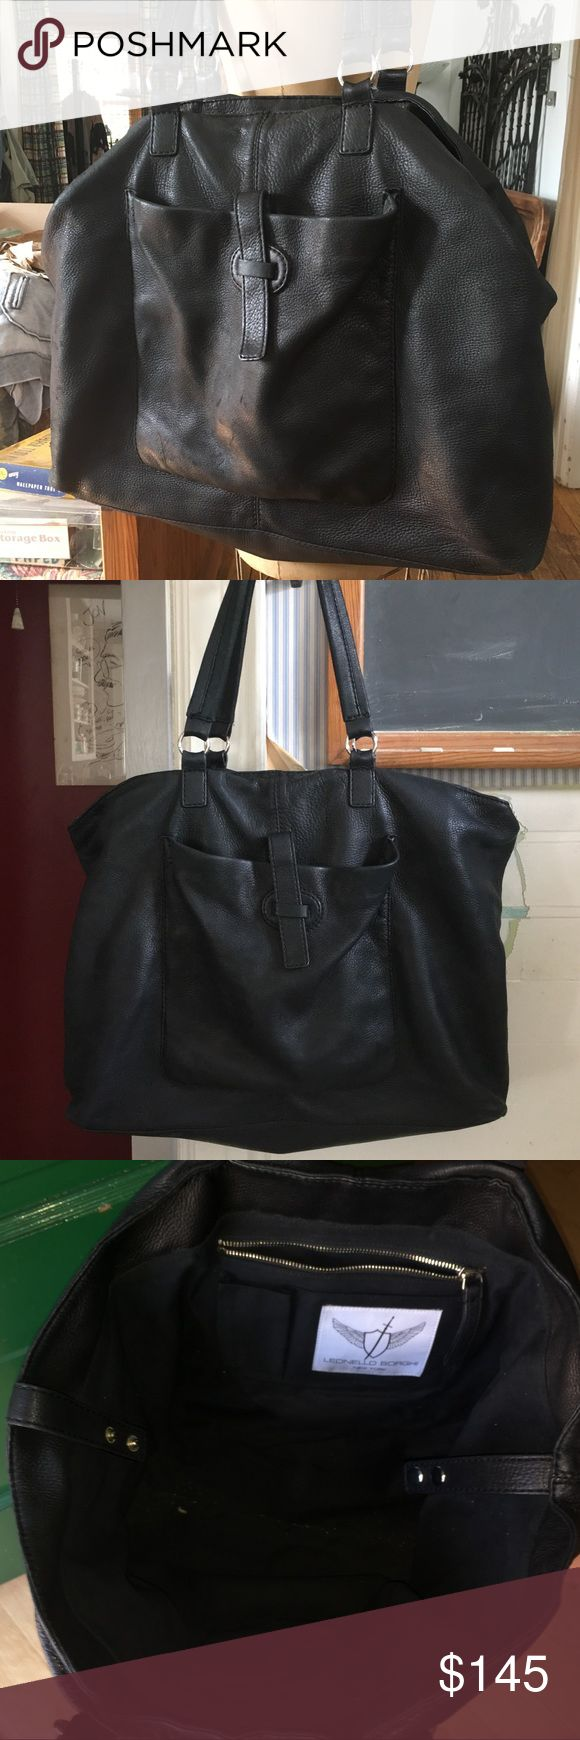 """HUGE SATCHEL LEONELLO BORGHI BLACK LEATHER BAG BIG 22"""" wide, 15"""" tall, 4 1/4"""" front to back. Thick softest pebbled matte leather. 11"""" handle drop,22 1/2"""" large long thick handles.Chrome silver rings .Outside pouch with strap closure.  Heavy silver zipper w leather pull. 2 side wall pockets. Gathered open wall pocket on other side.  Lined in clean heavy black canvas twill. Interior gusset safety straps w double snaps.  Leonello borghi New York  Fabric label.  Made in Italy. Some surface wear…"""